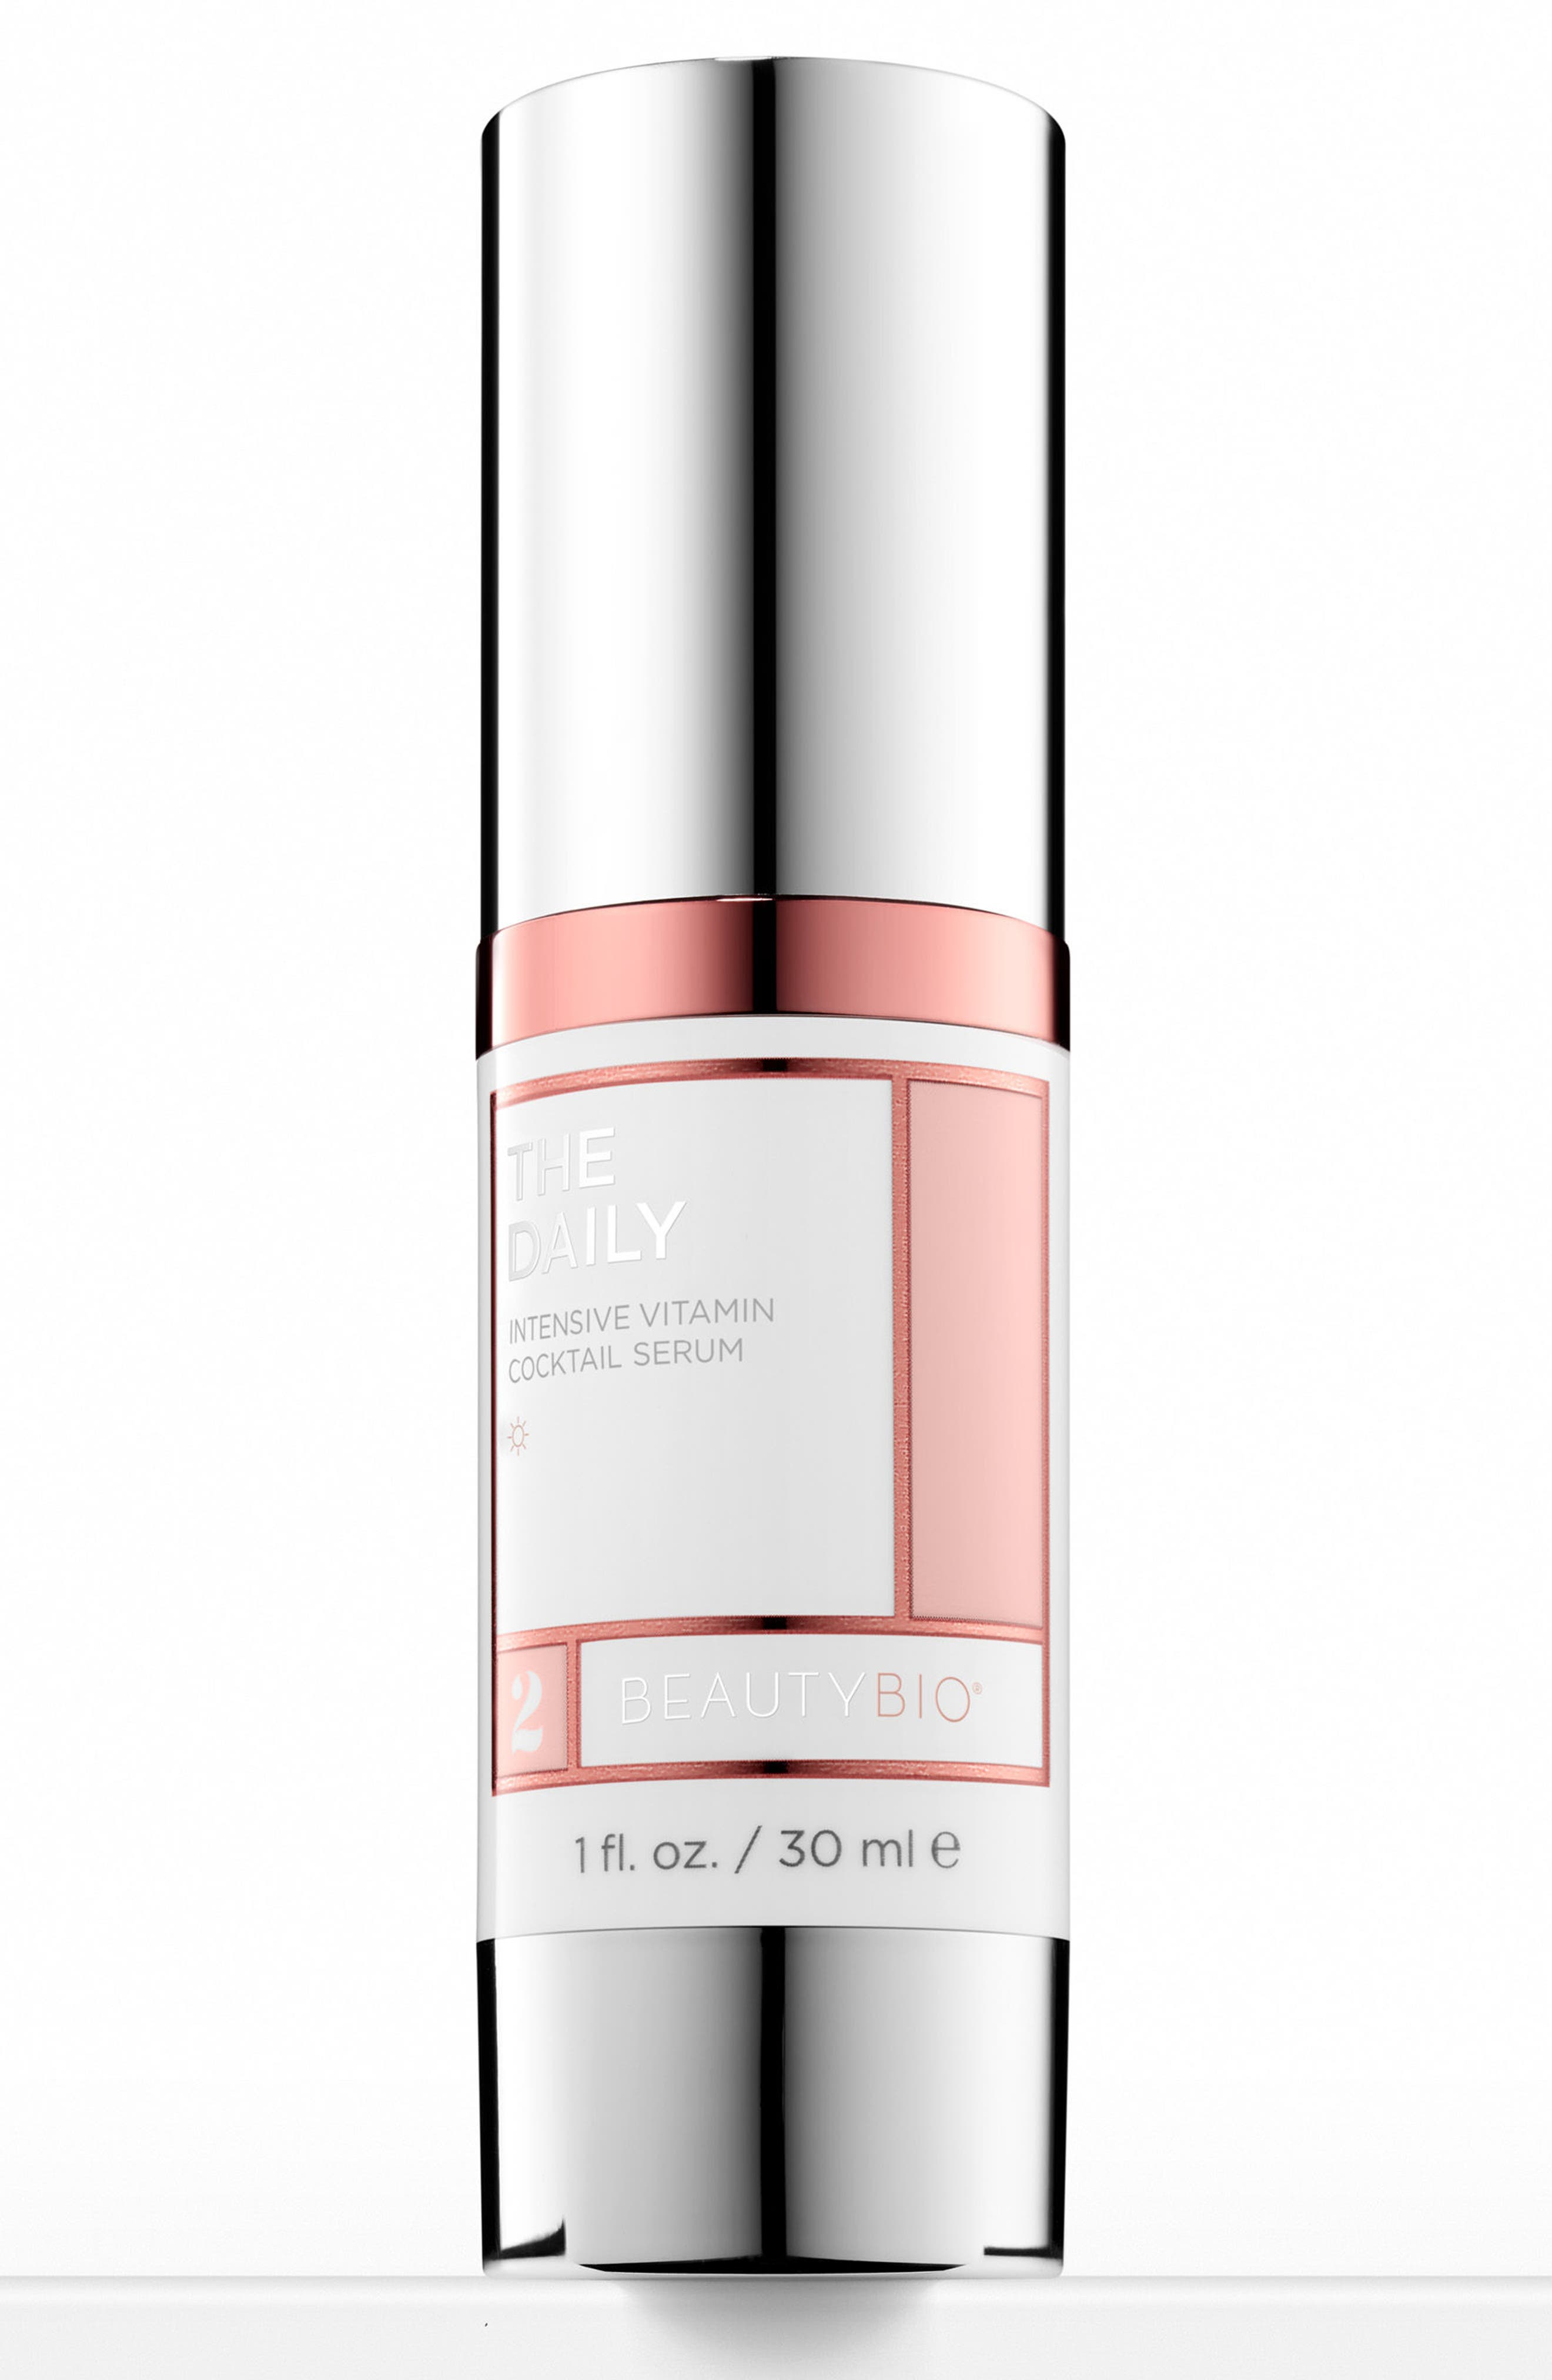 BEAUTY BIOSCIENCE The Daily Intensive Vitamin Cocktail Serum